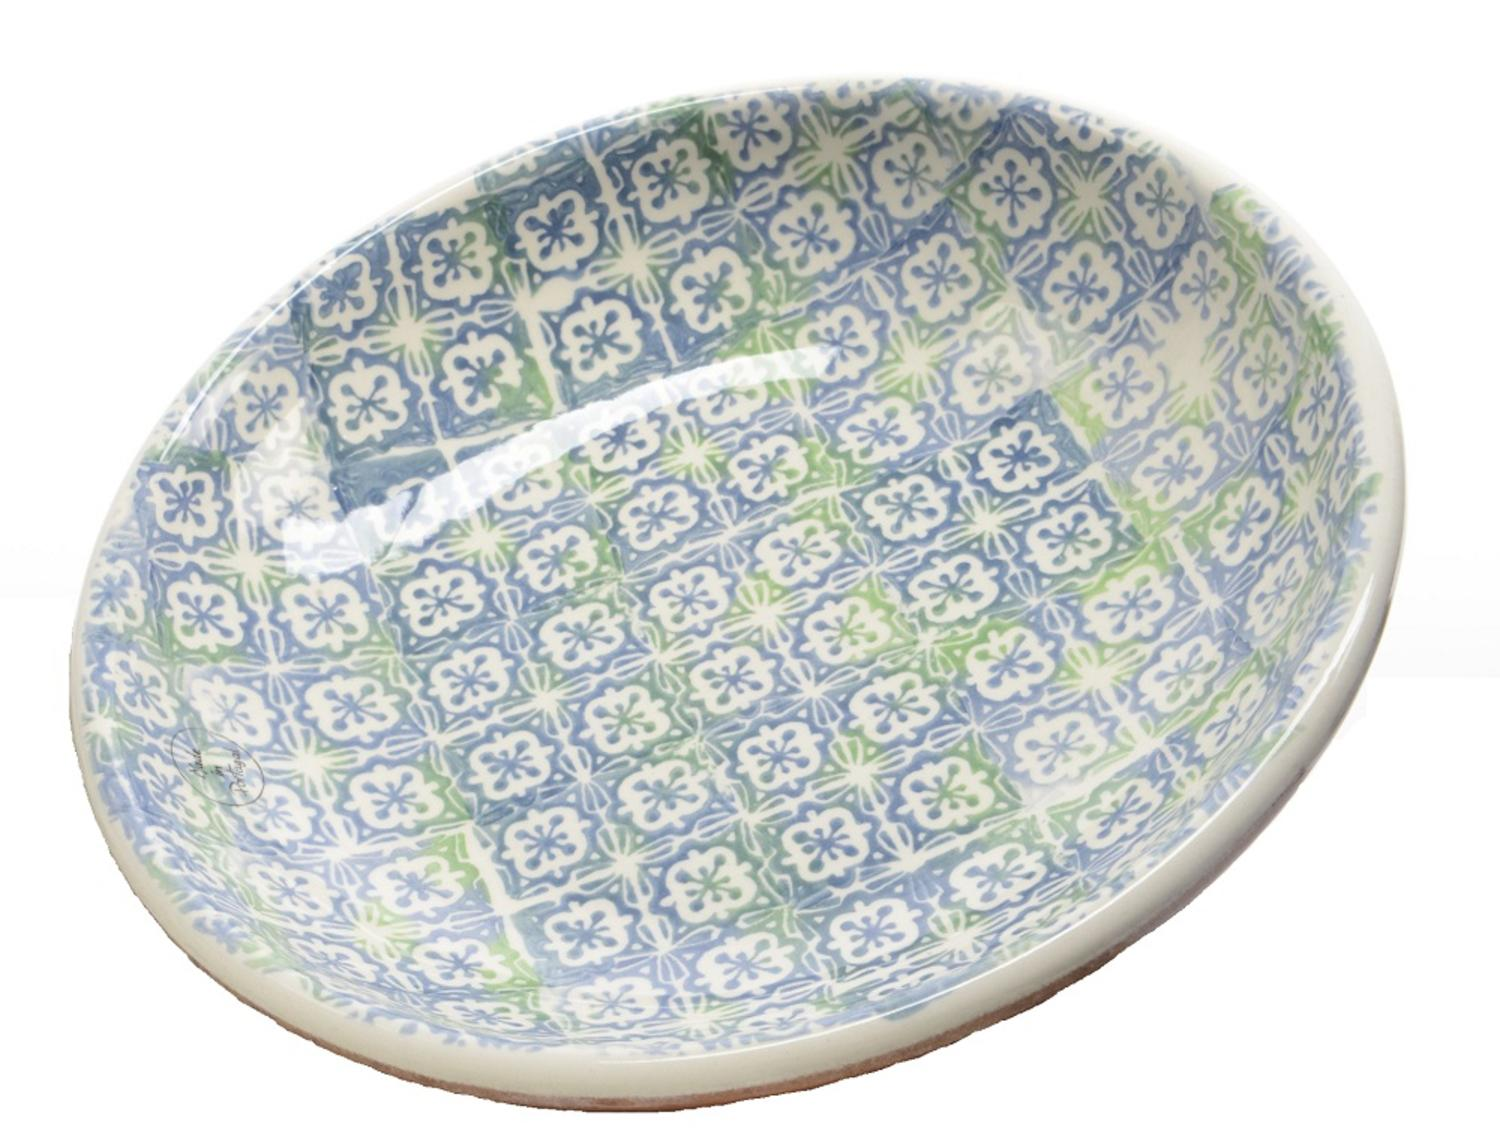 "12.25"" French Countryside Decorative Blue Flower and Green Cross Round Terracotta Bowl by Kaemingk"